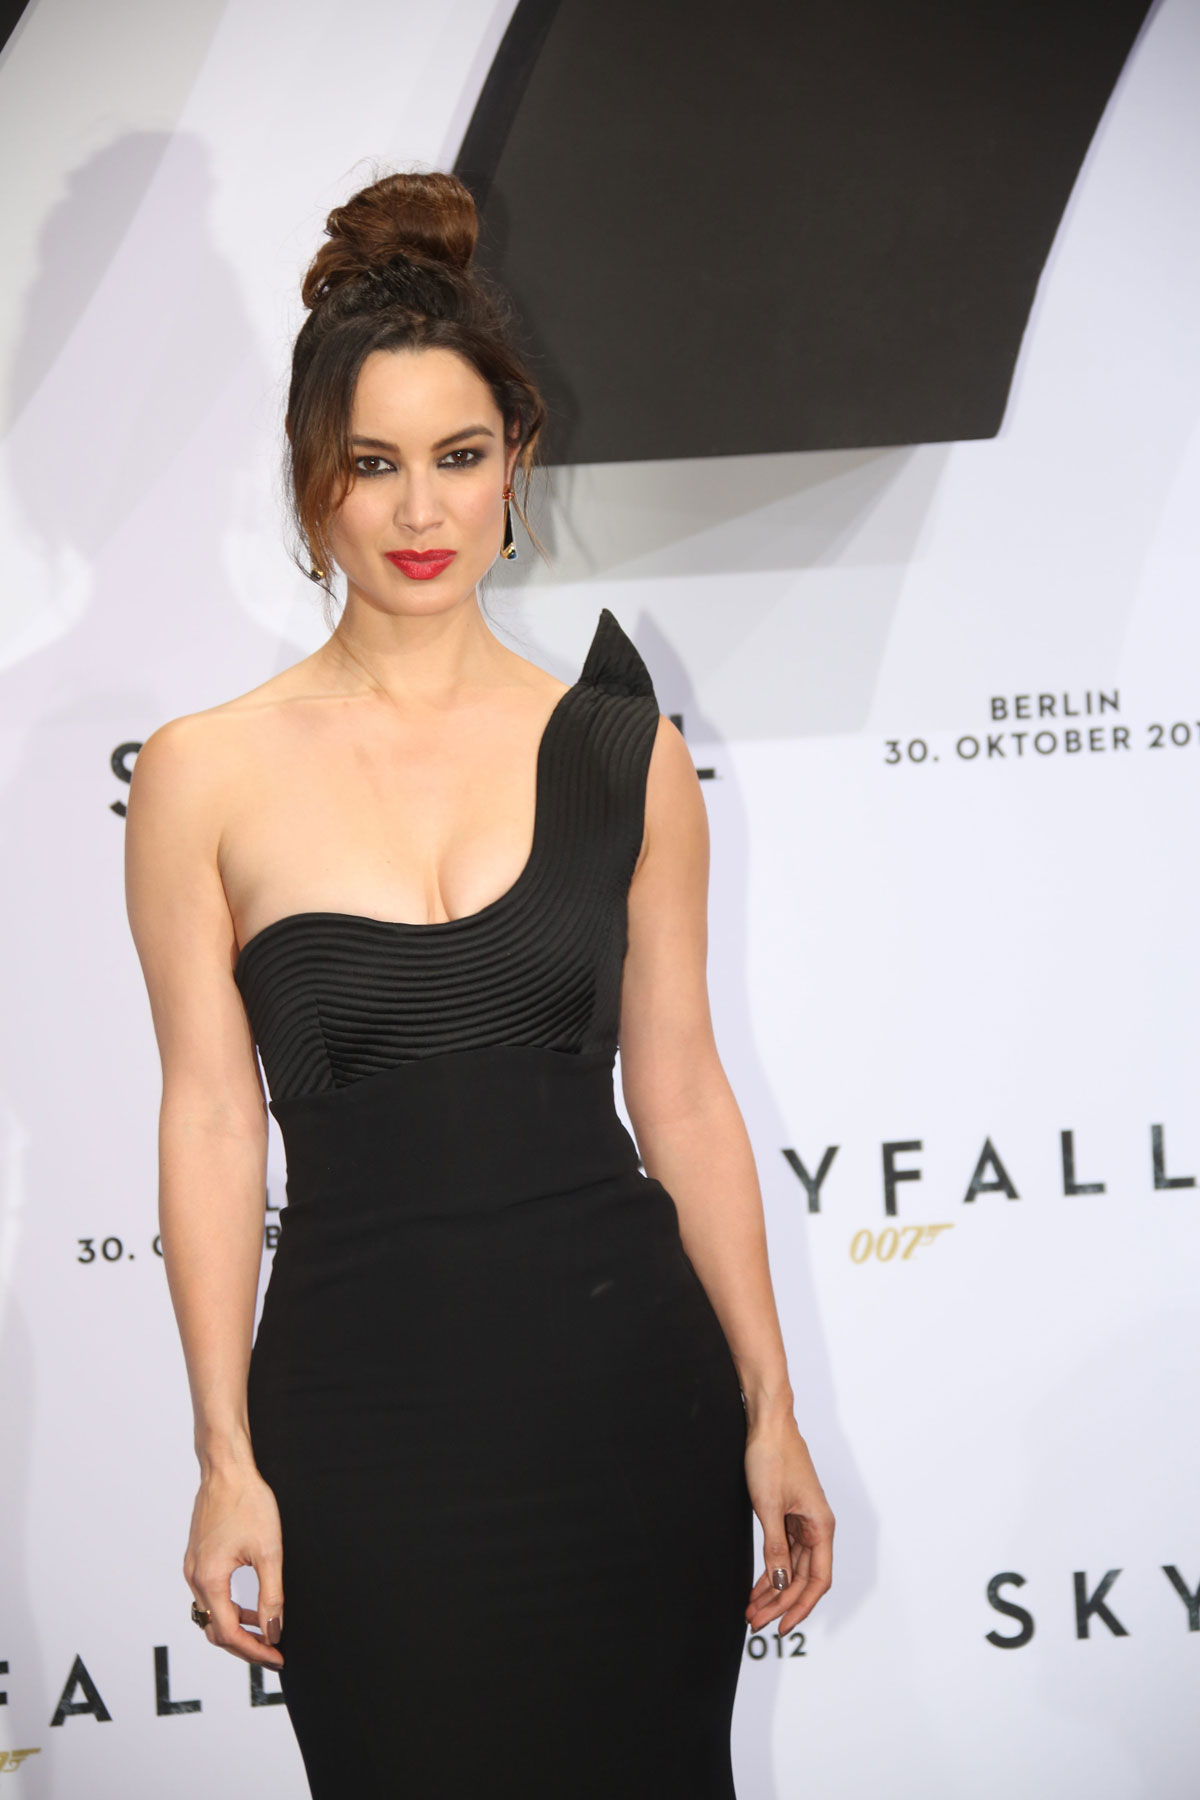 BERENICE-MARLOHE-at-Skyfall-Premiere-in-Berlin-10.jpg